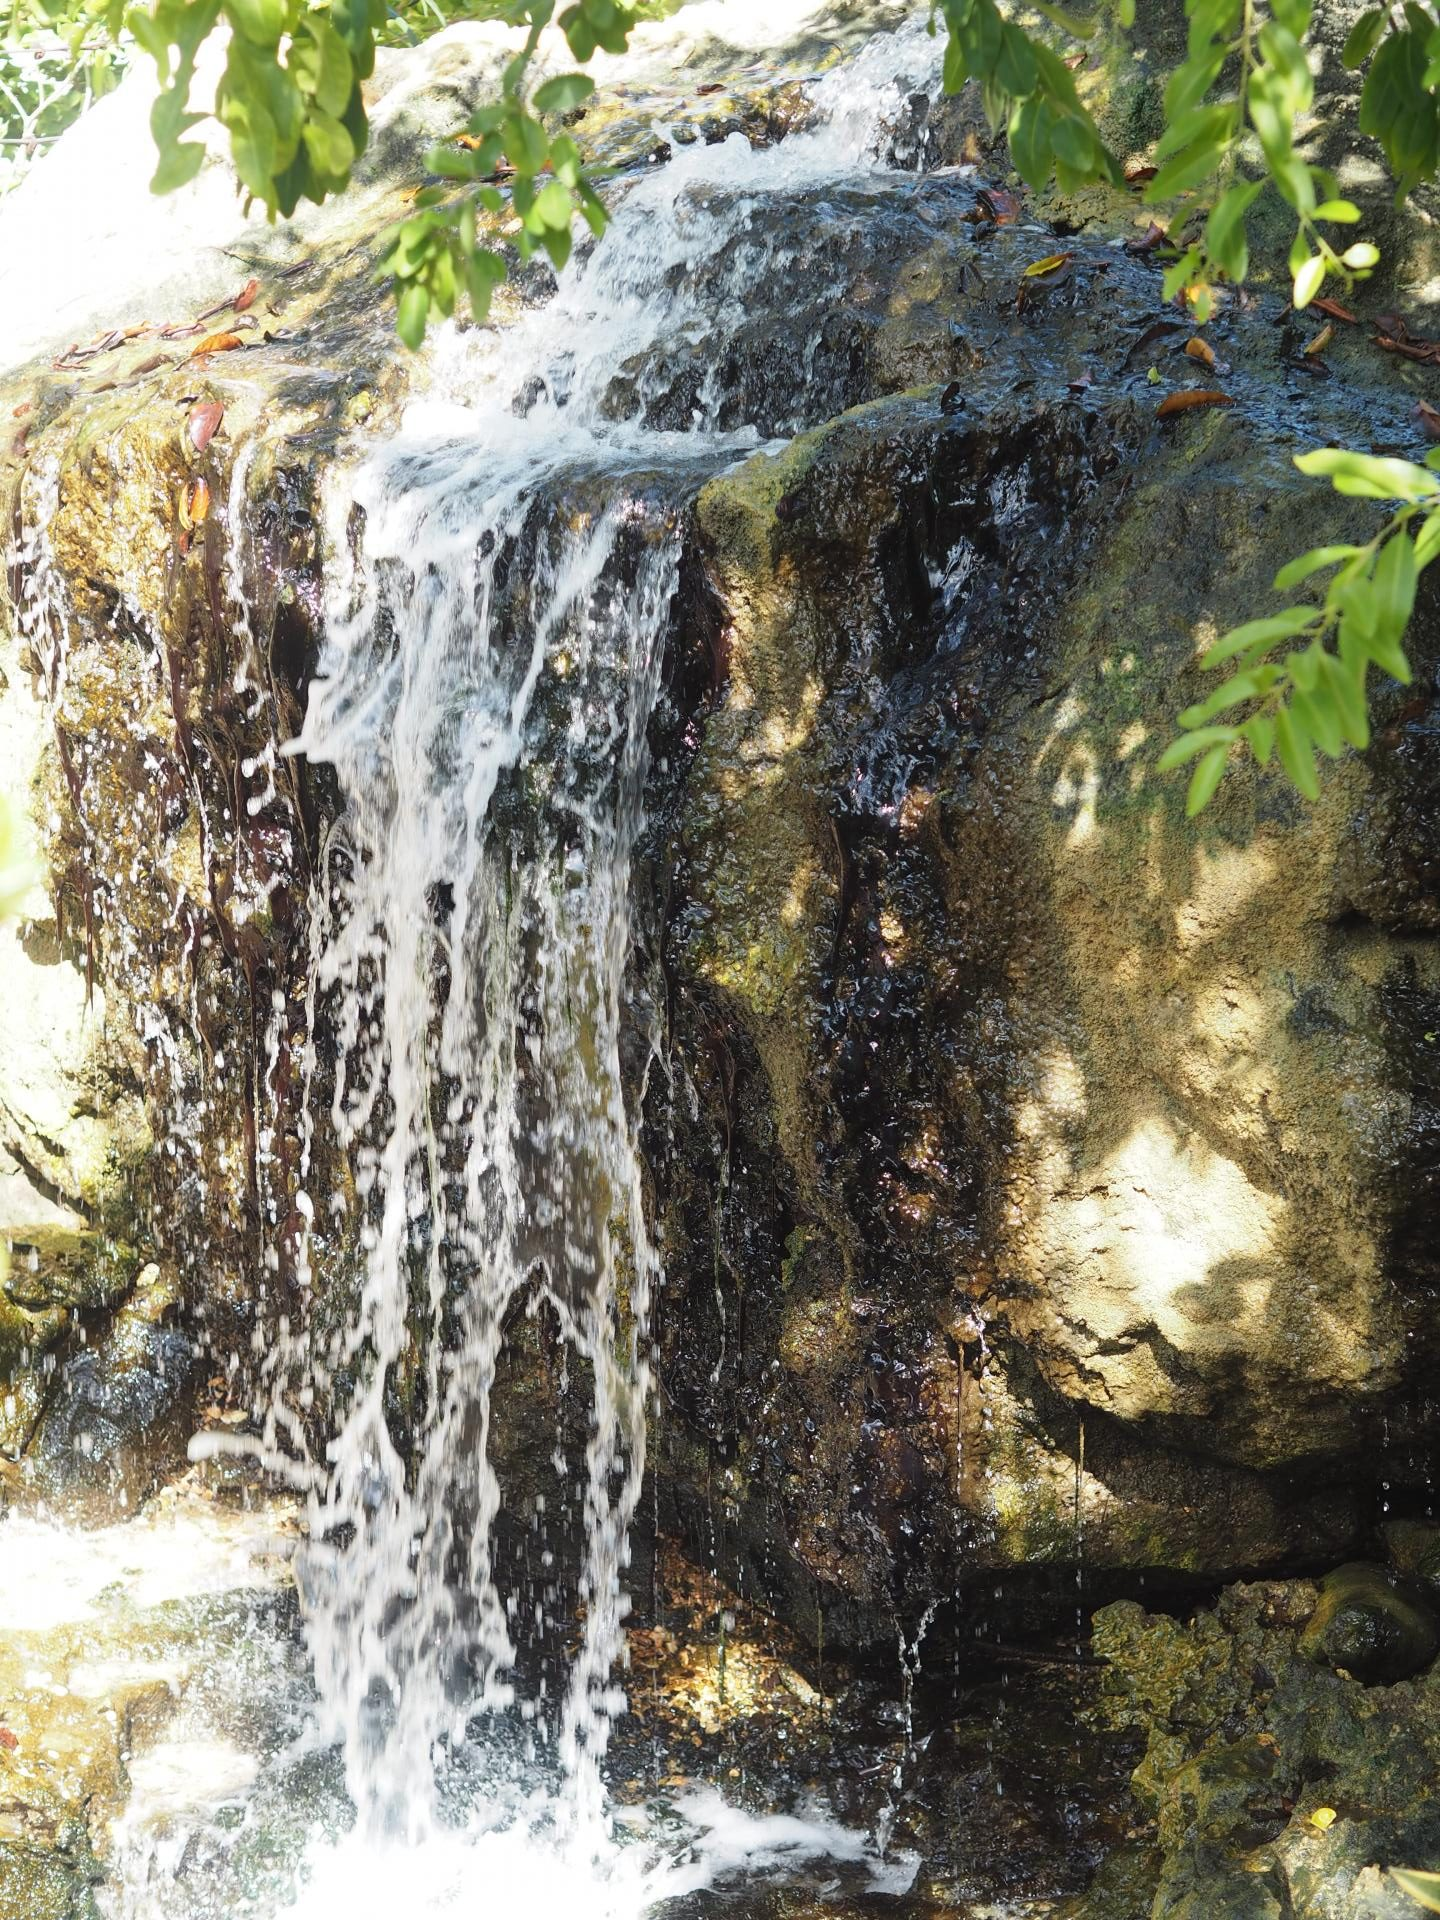 Luxury Caribbean Travel - Water Fall